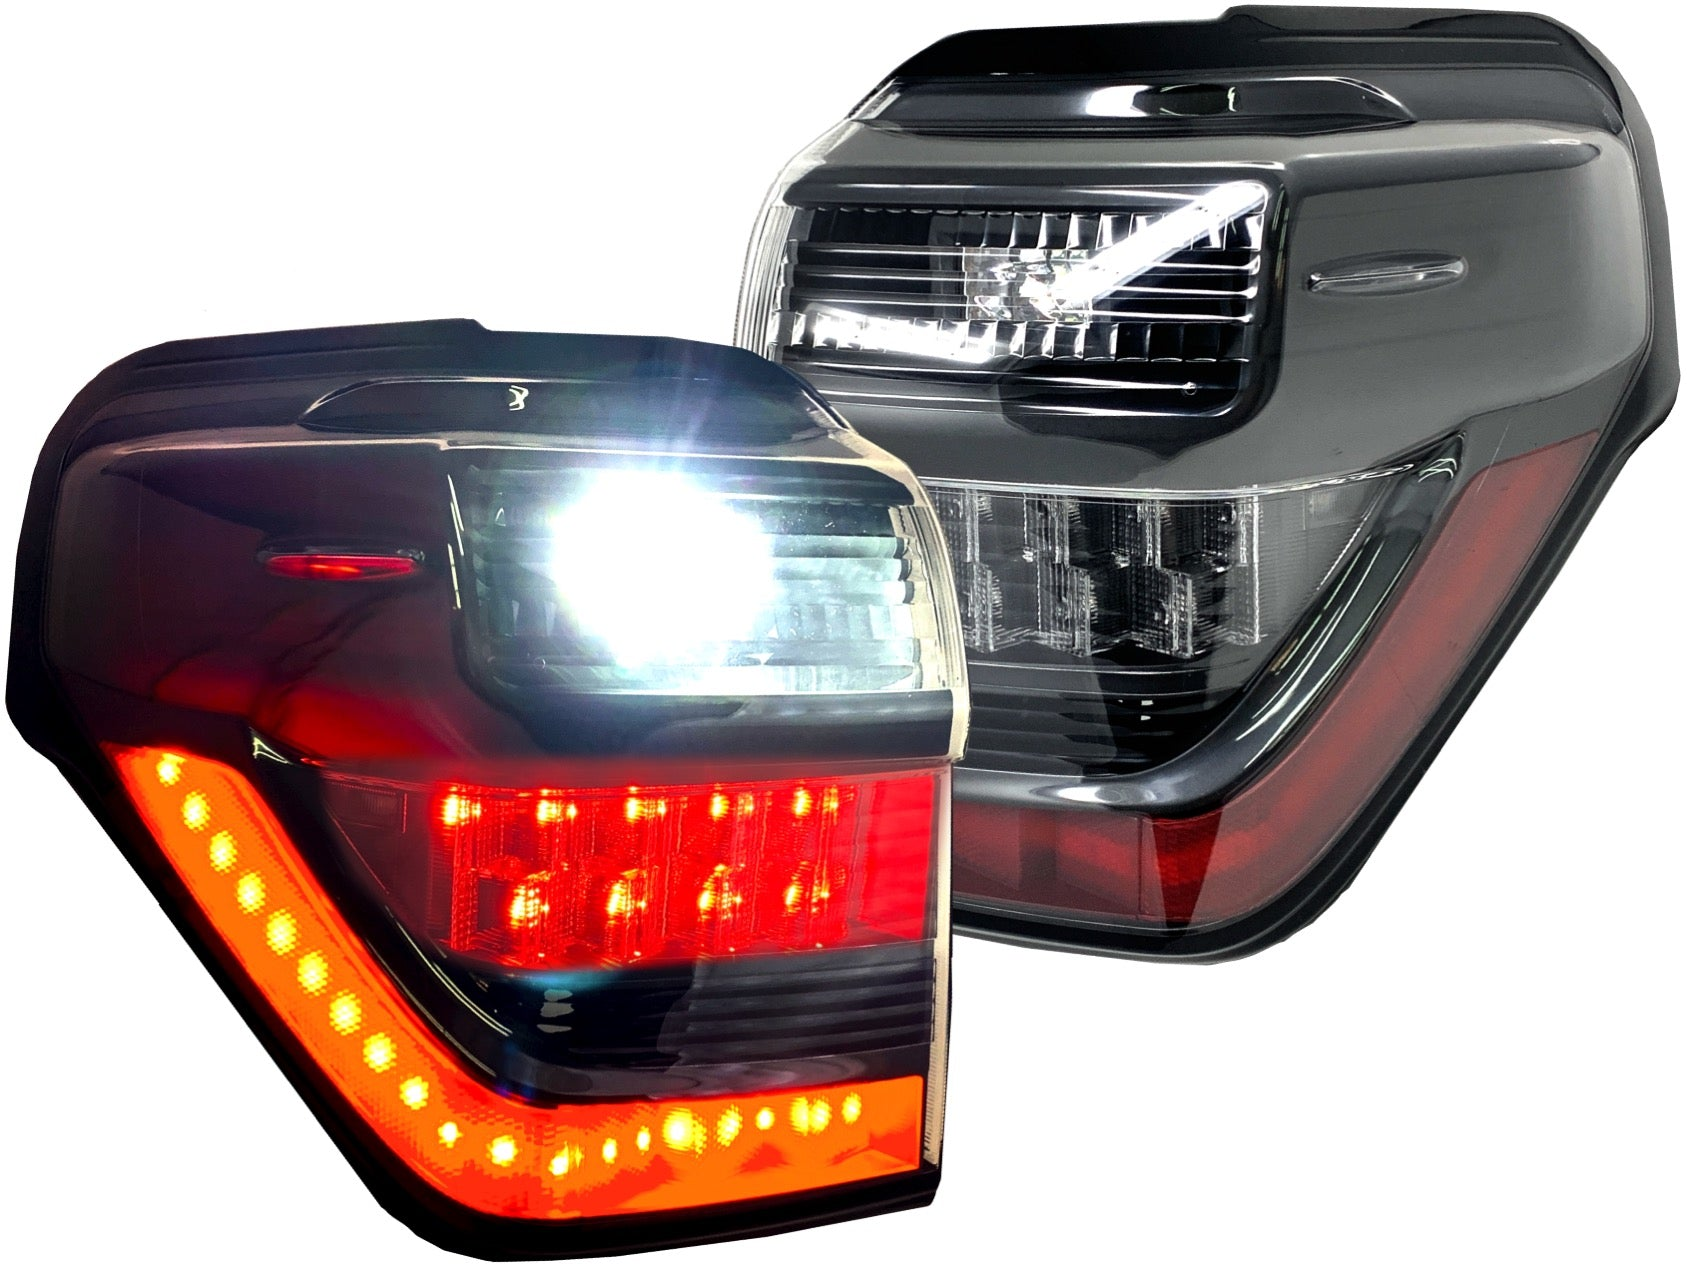 OLED BLACK LED TAIL LIGHTS - TOYOTA 4RUNNER 5th GEN 2010-2020